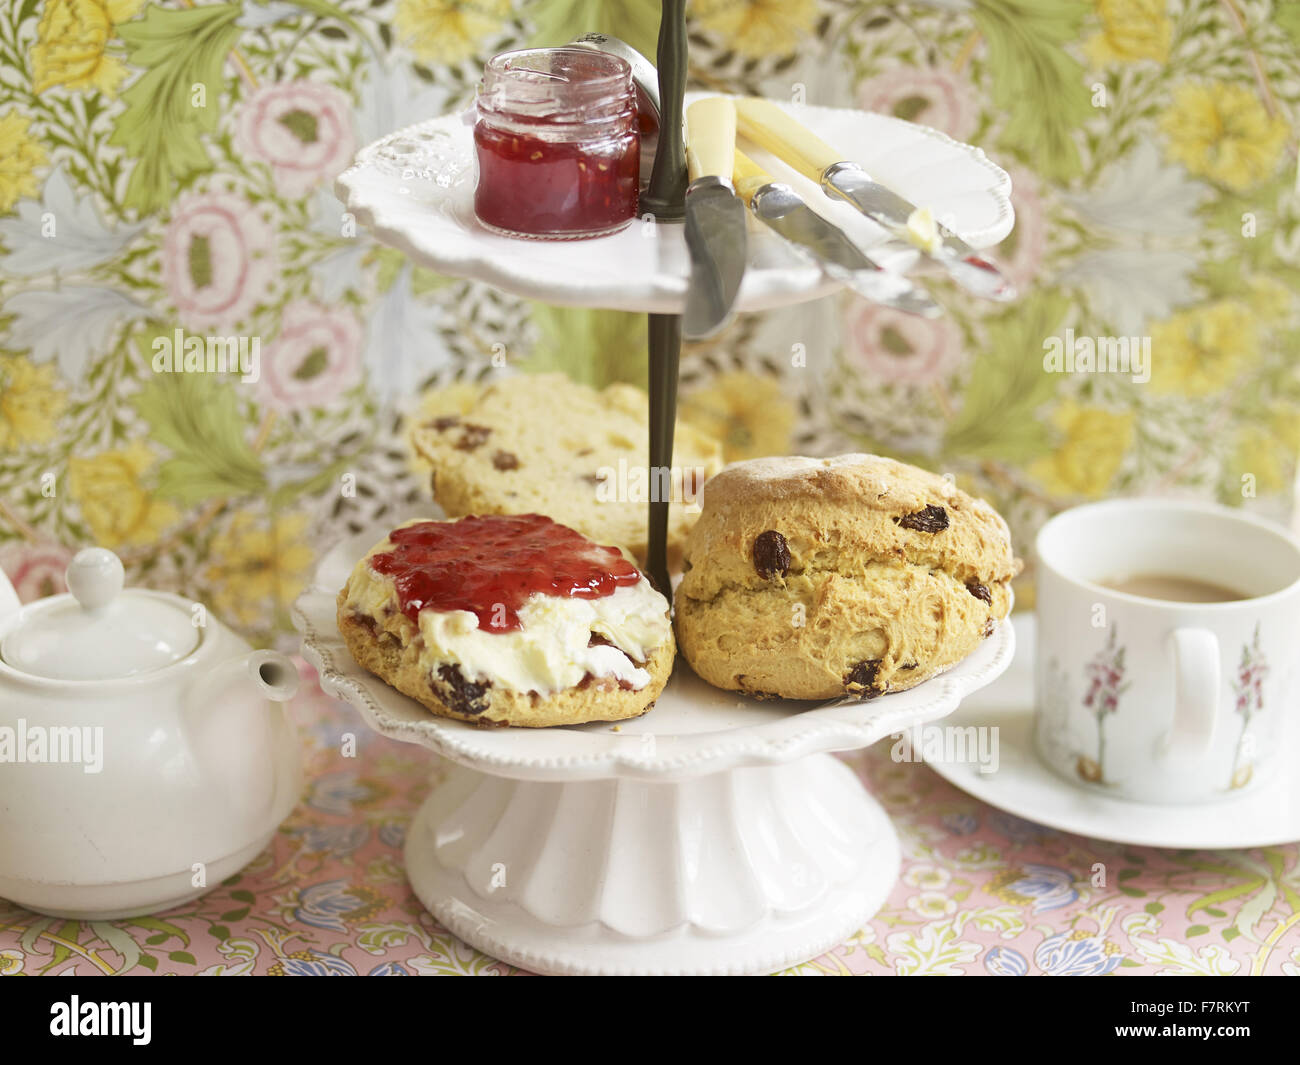 A cream tea photographed for the 2015 National Trust Summer Cookbook. - Stock Image